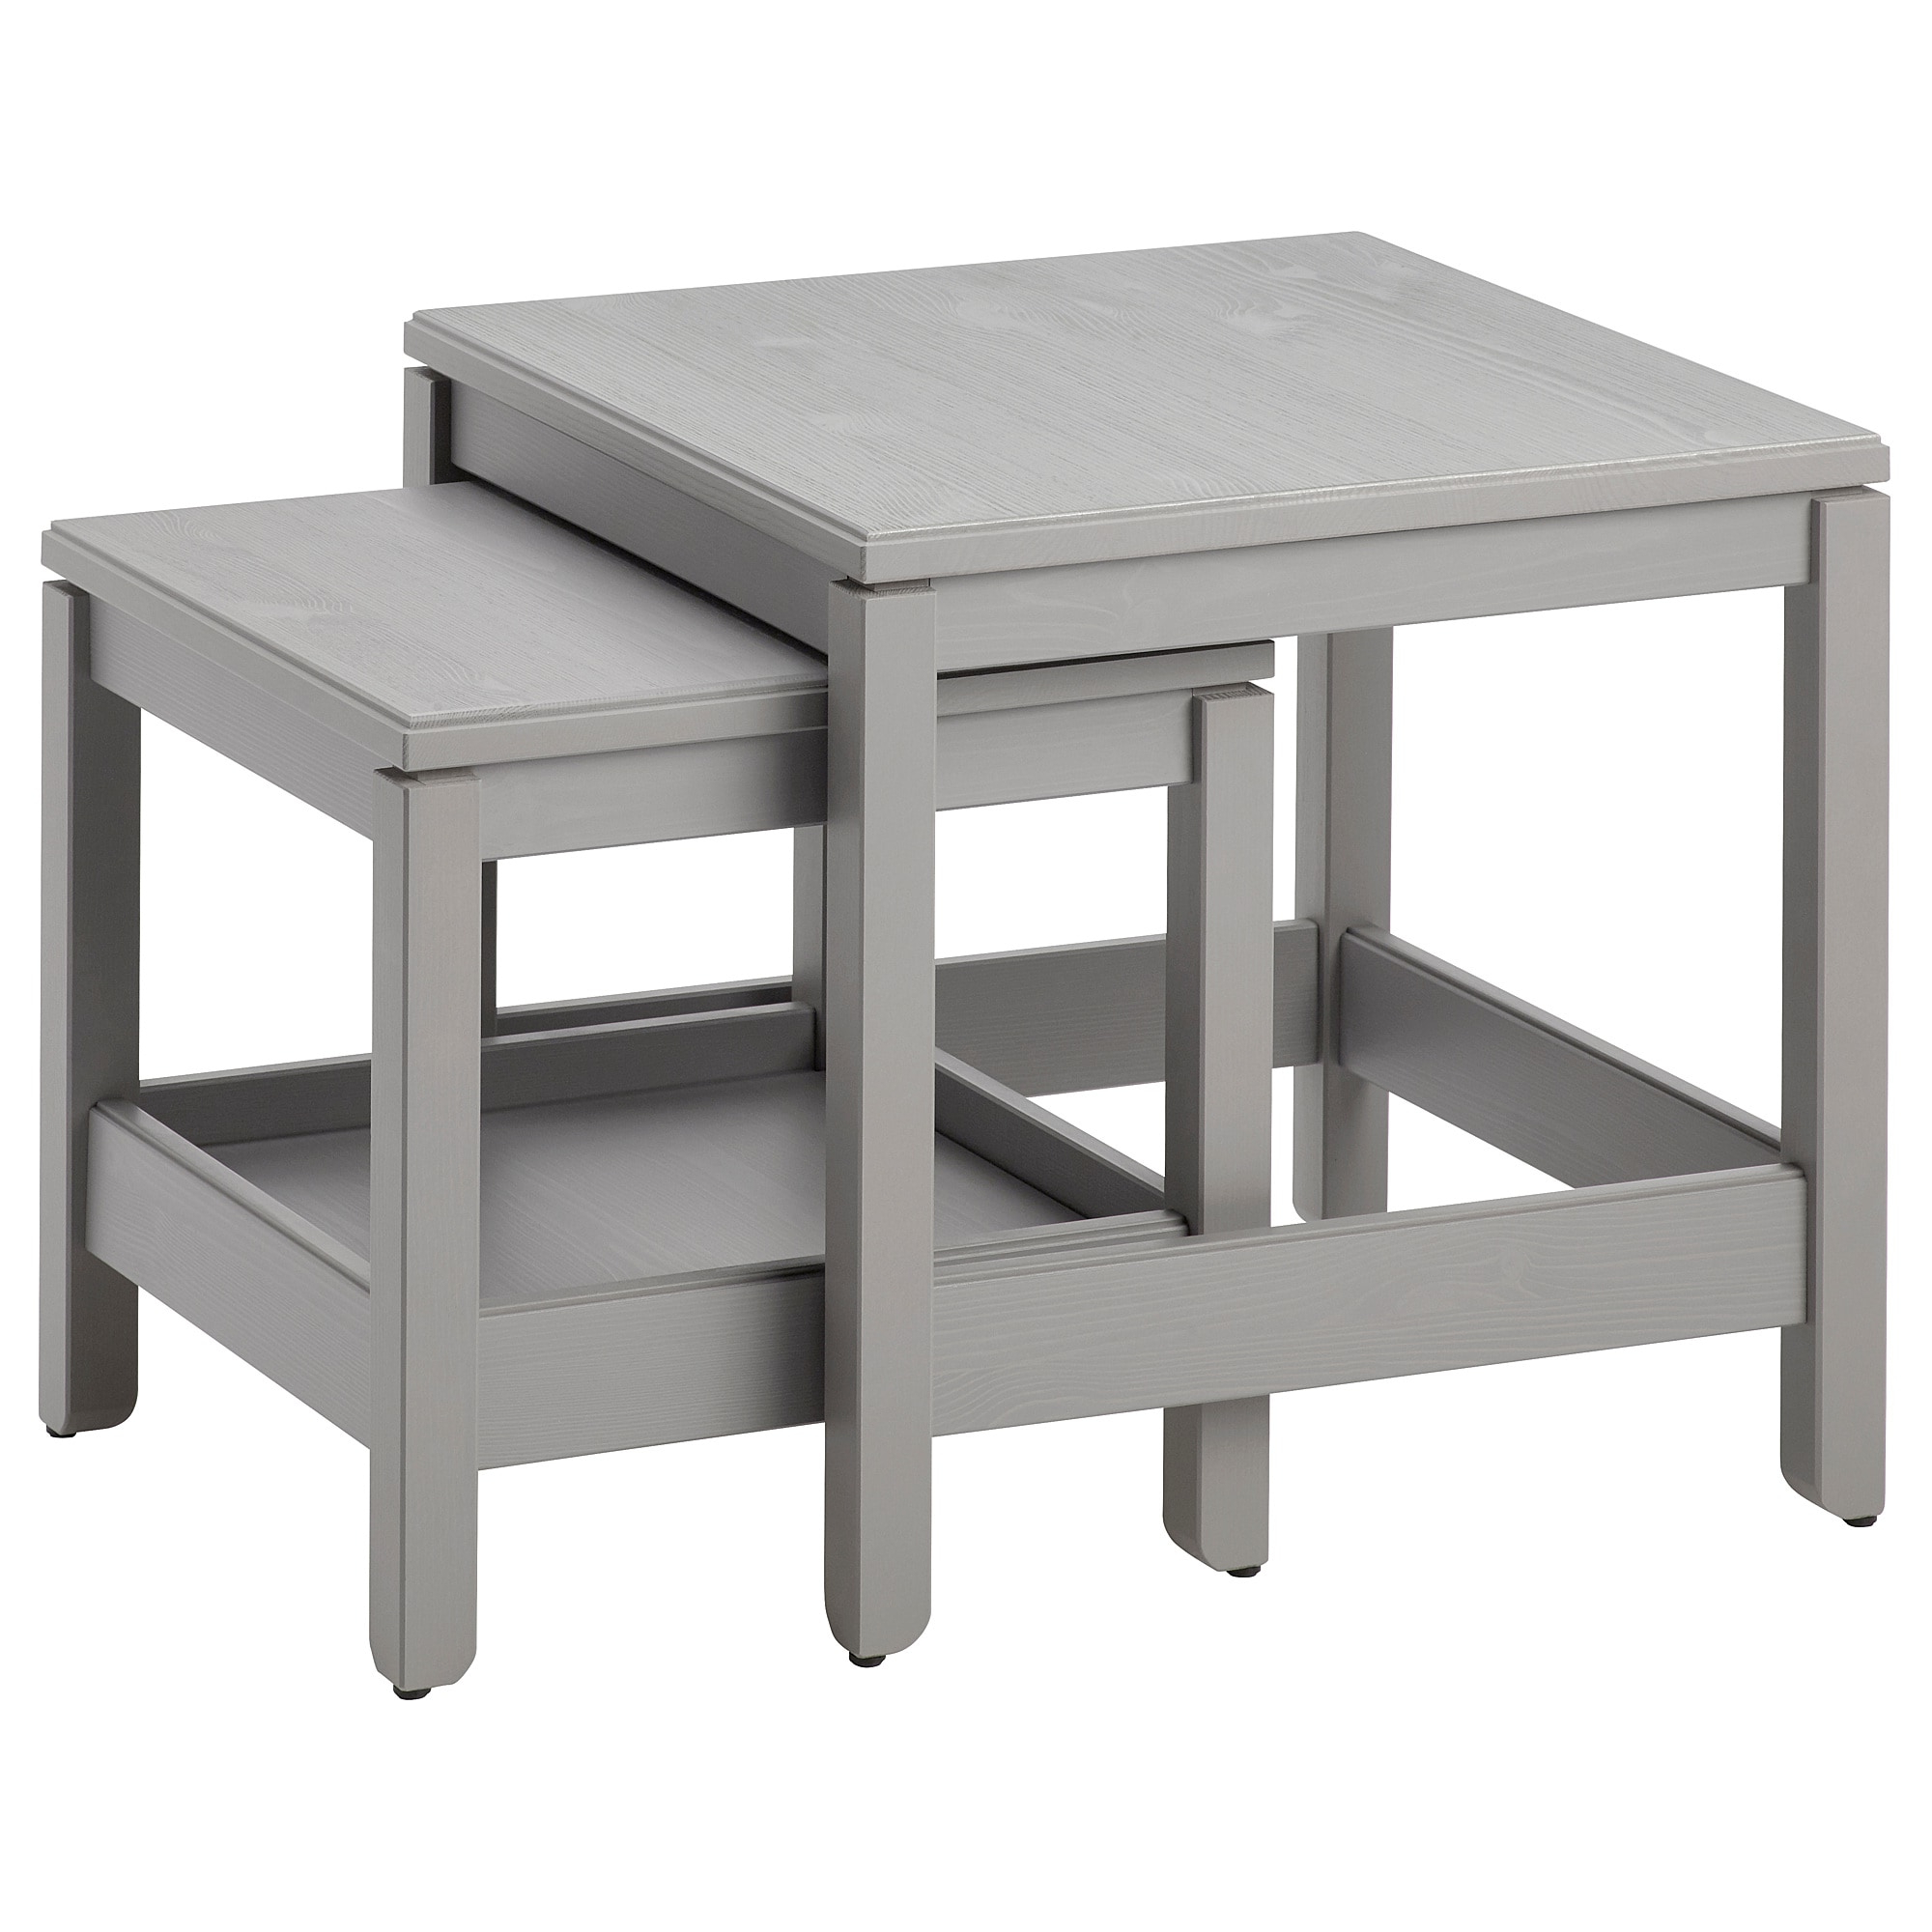 Ikea Throughout Trendy Cara Cocktail Tables (View 12 of 20)